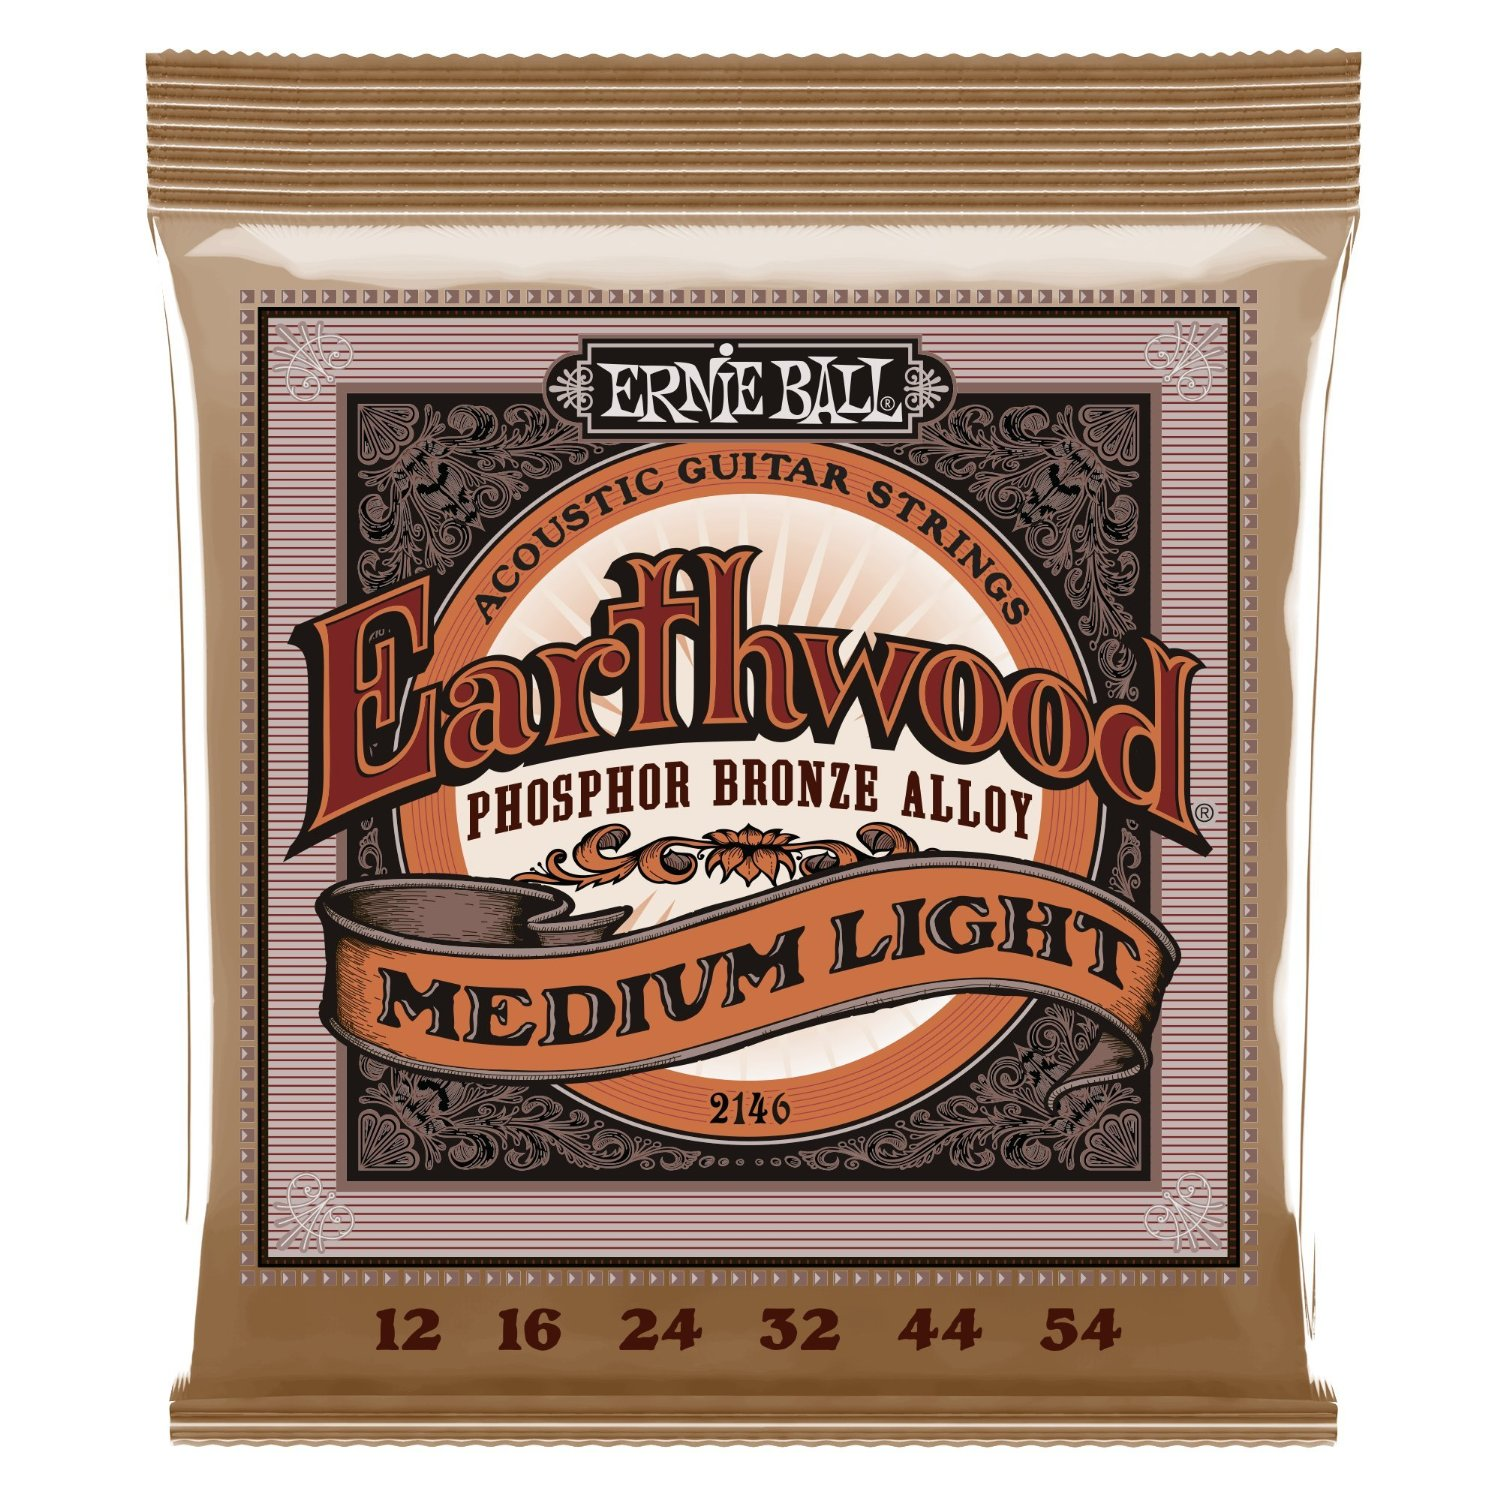 Ernie Ball 2146 Earthwood Medium Light Acoustic Phosphor Bronze String Set by Ernie Ball